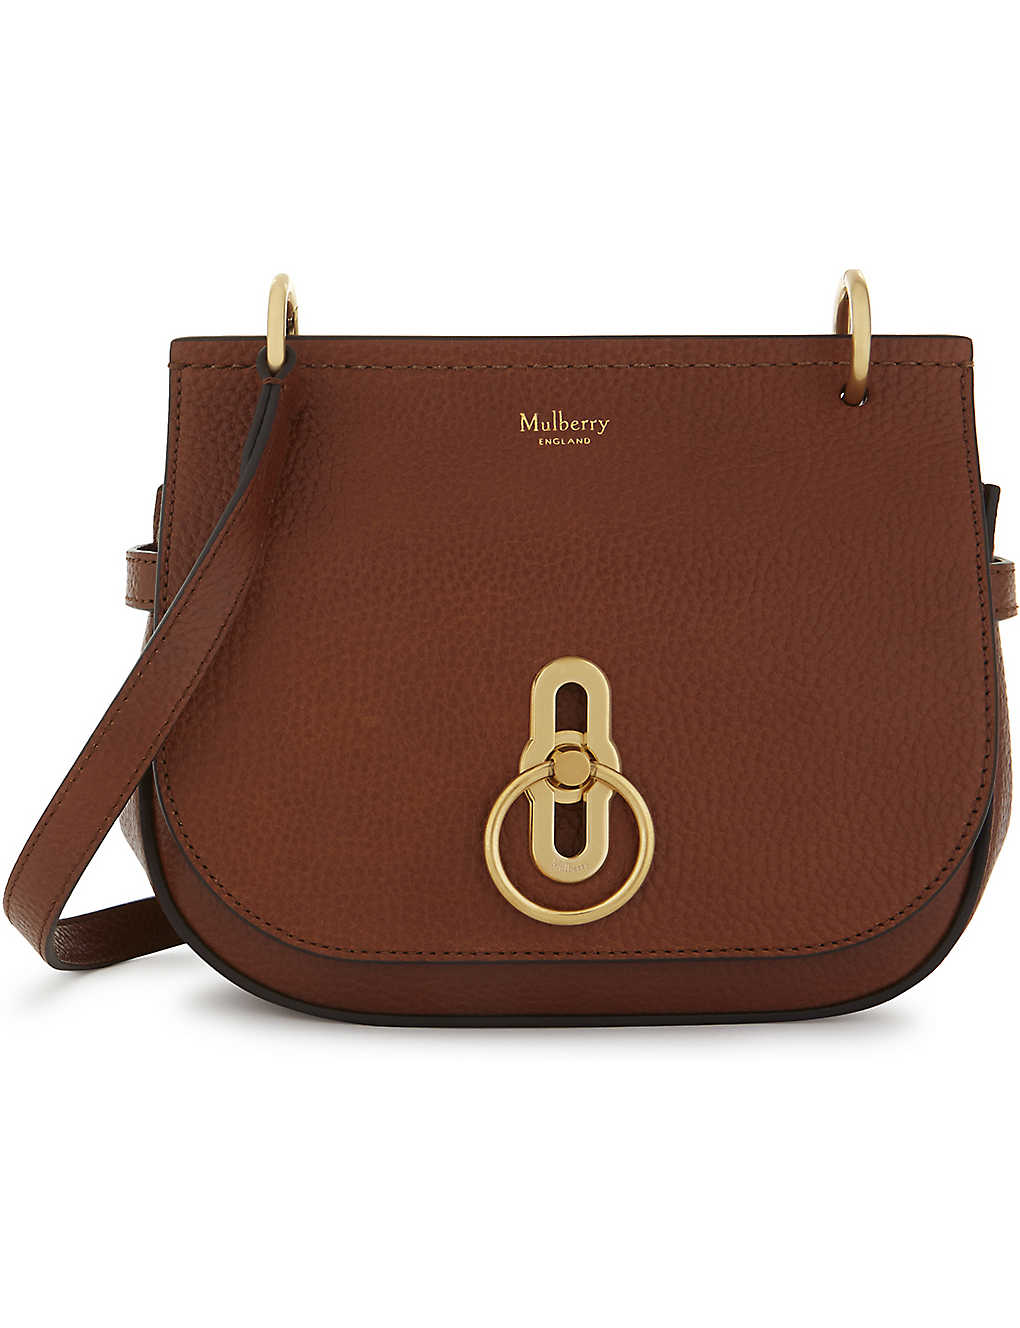 d300d42b49 MULBERRY - Small Amberley pebbled leather satchel